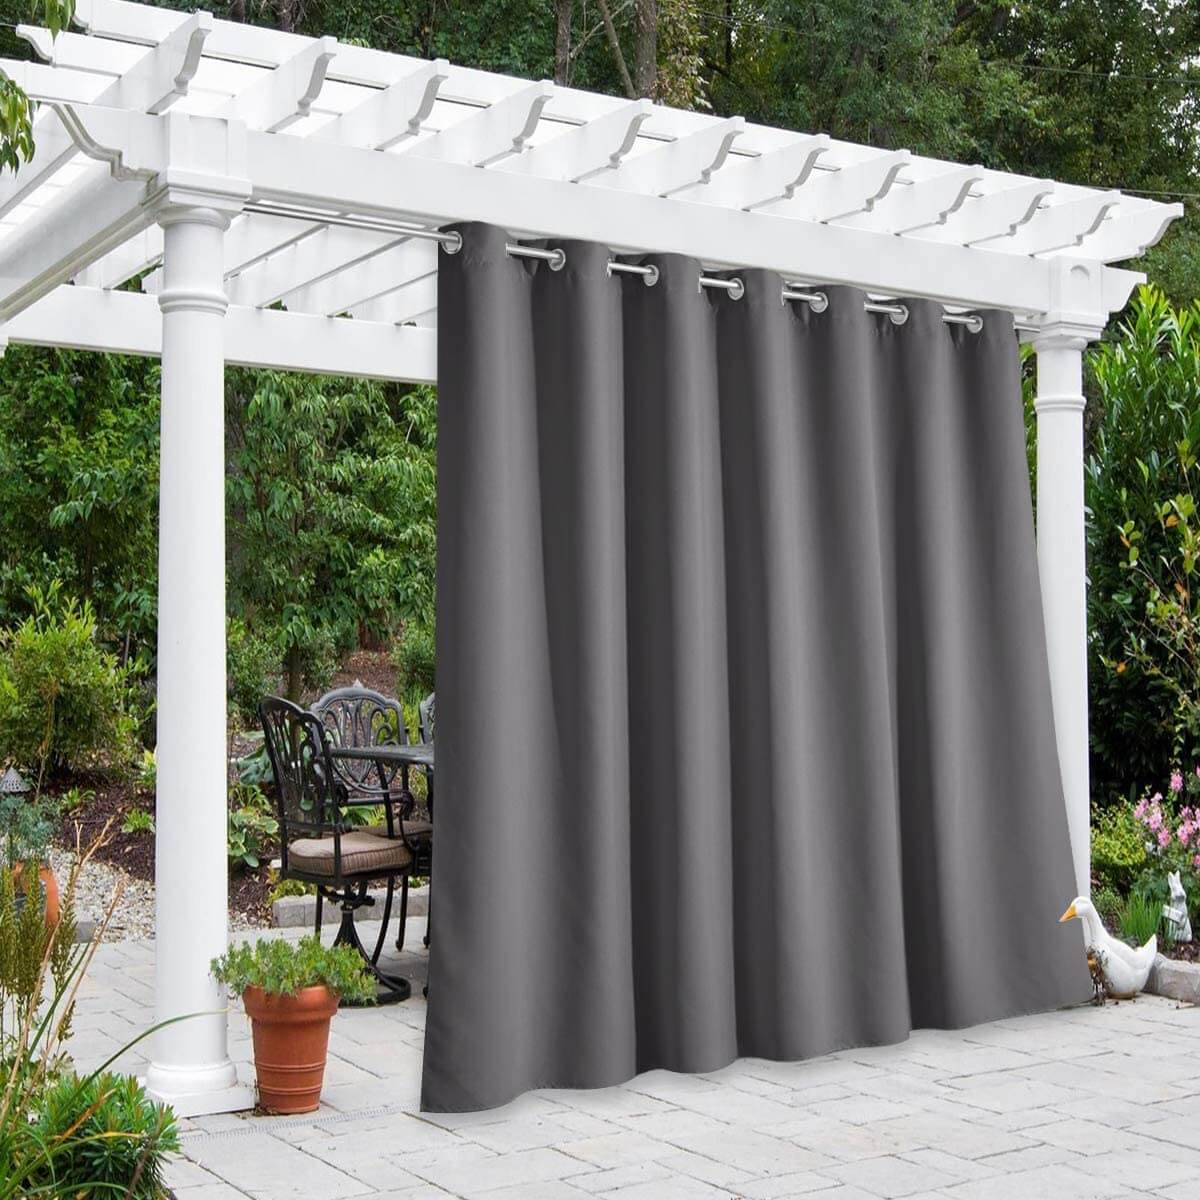 FLEXIBLE SIZE AND COLORS OUTDOOR CURTAINS FOR PATIO